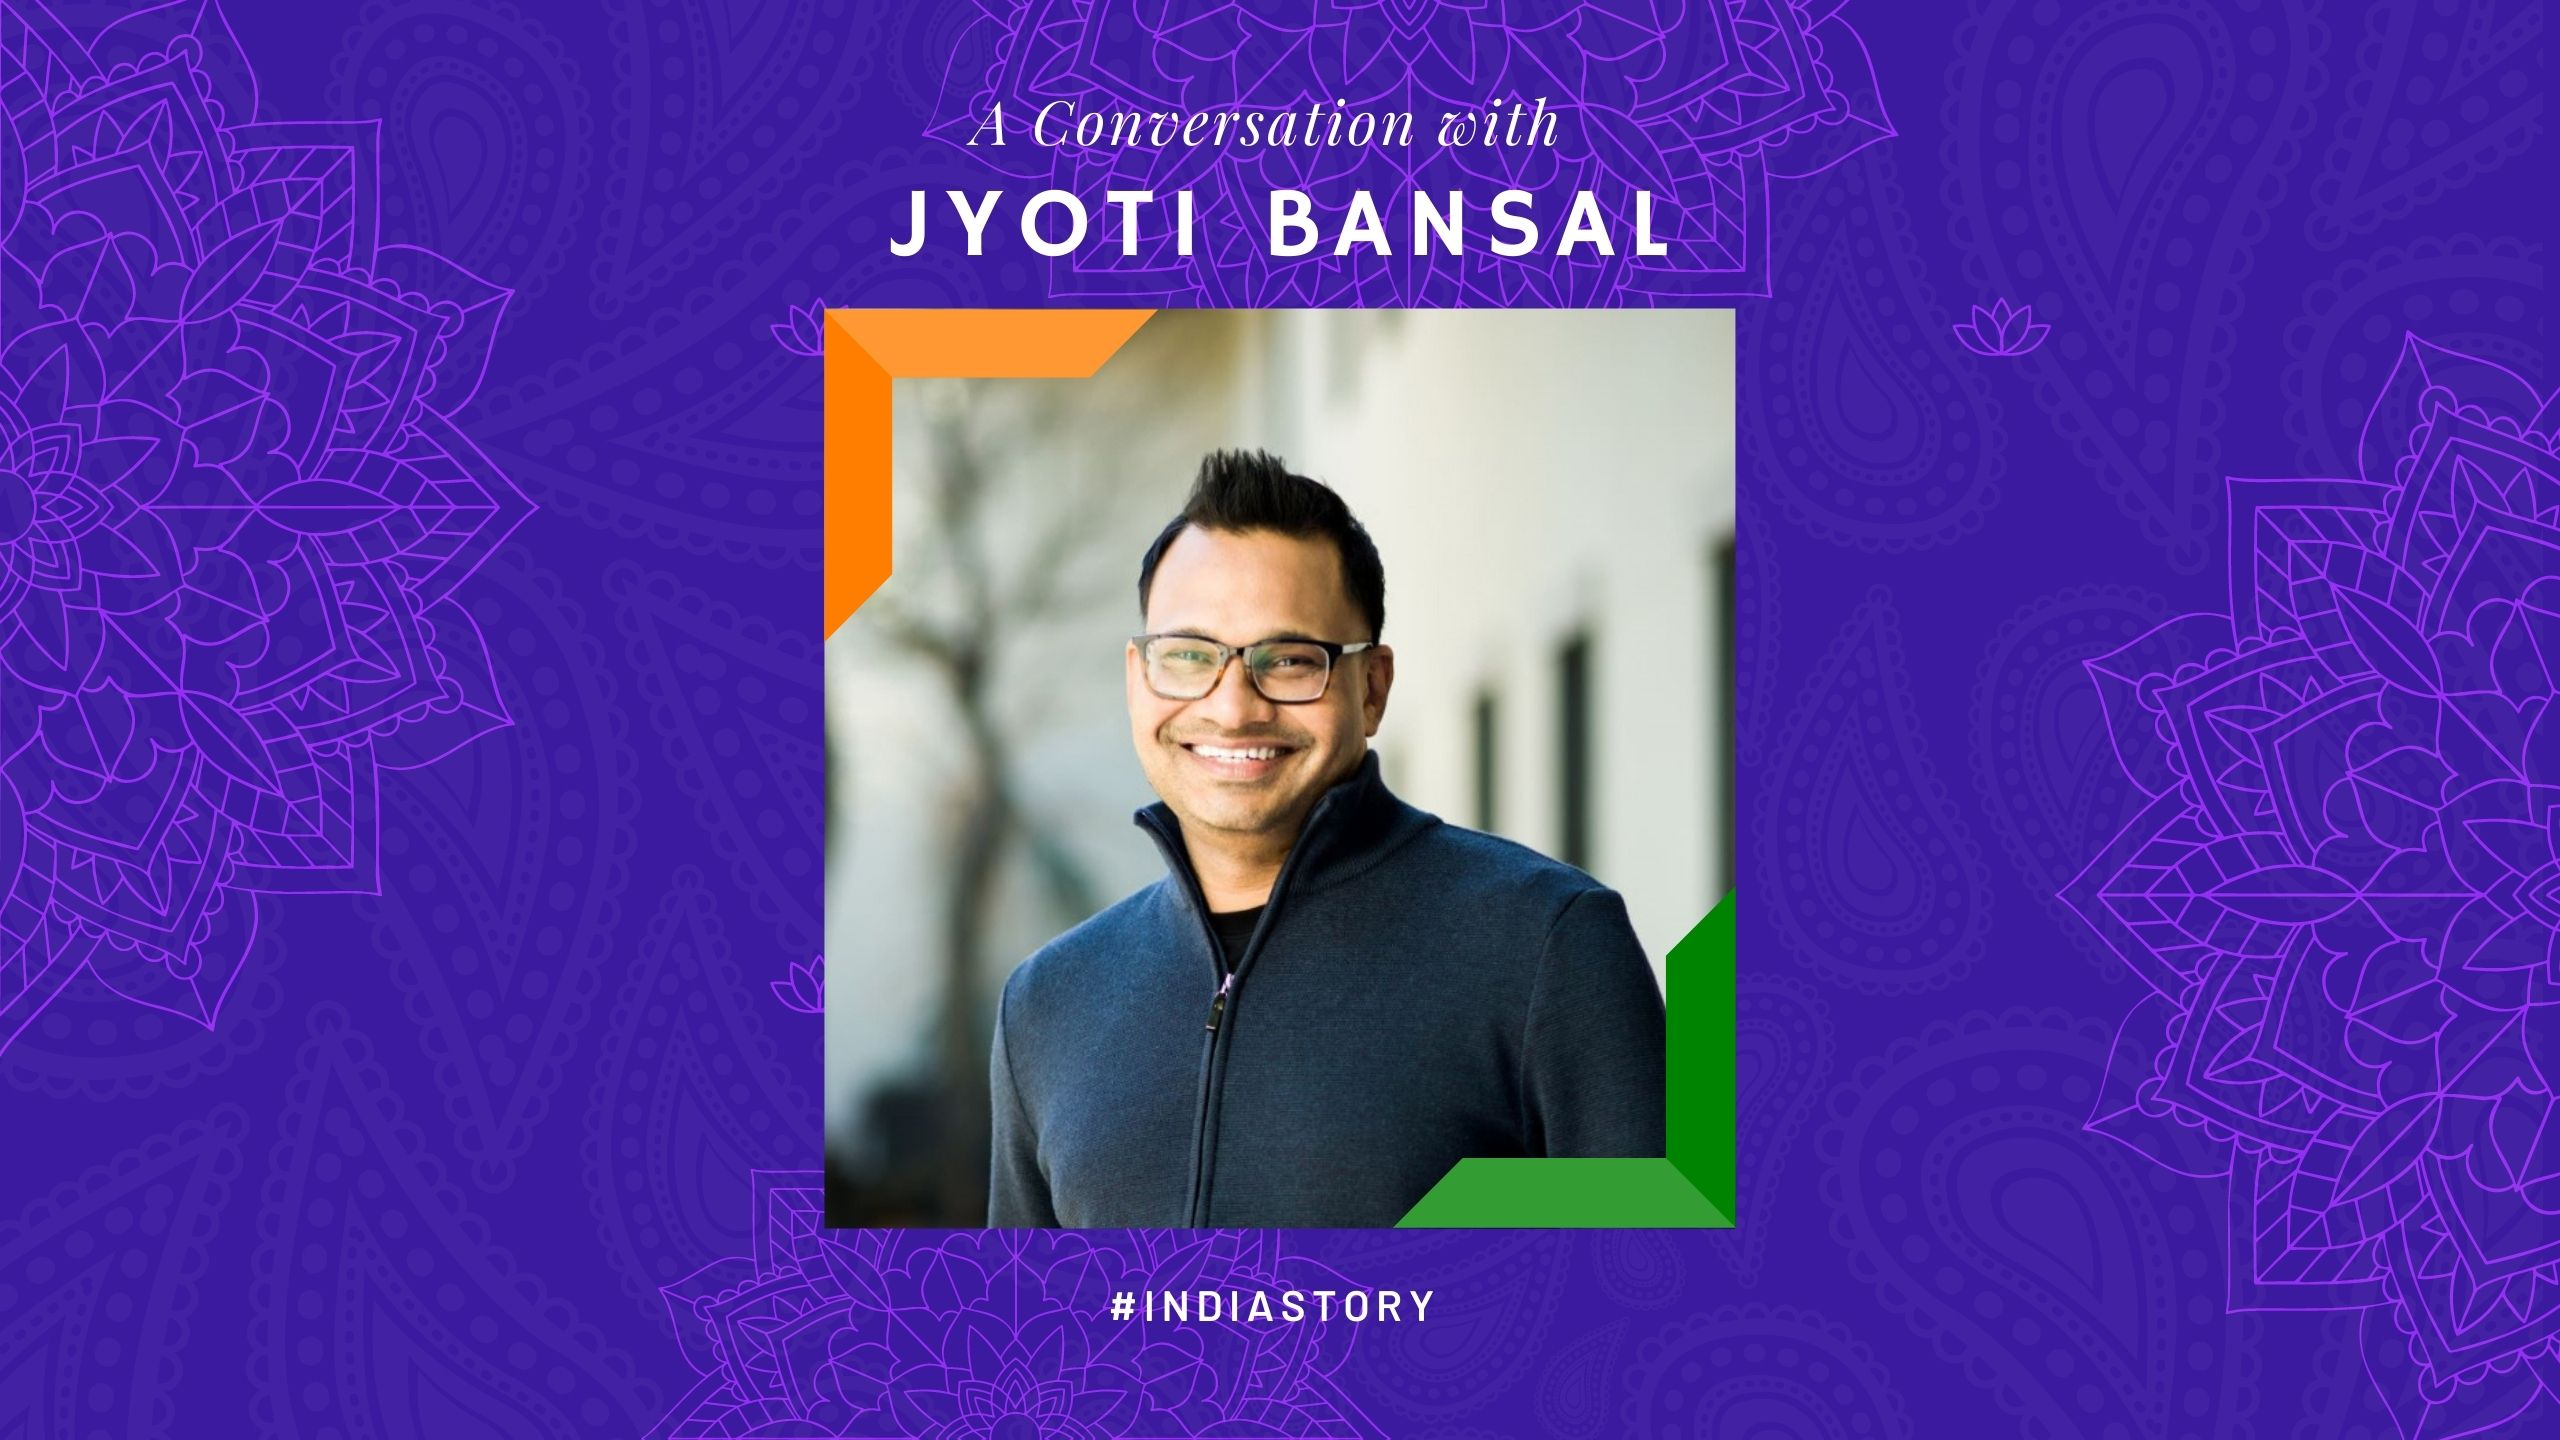 Silicon Valley serial entrepreneur & Venture Capitalist Jyoti Bansal shares his #IndiaStory